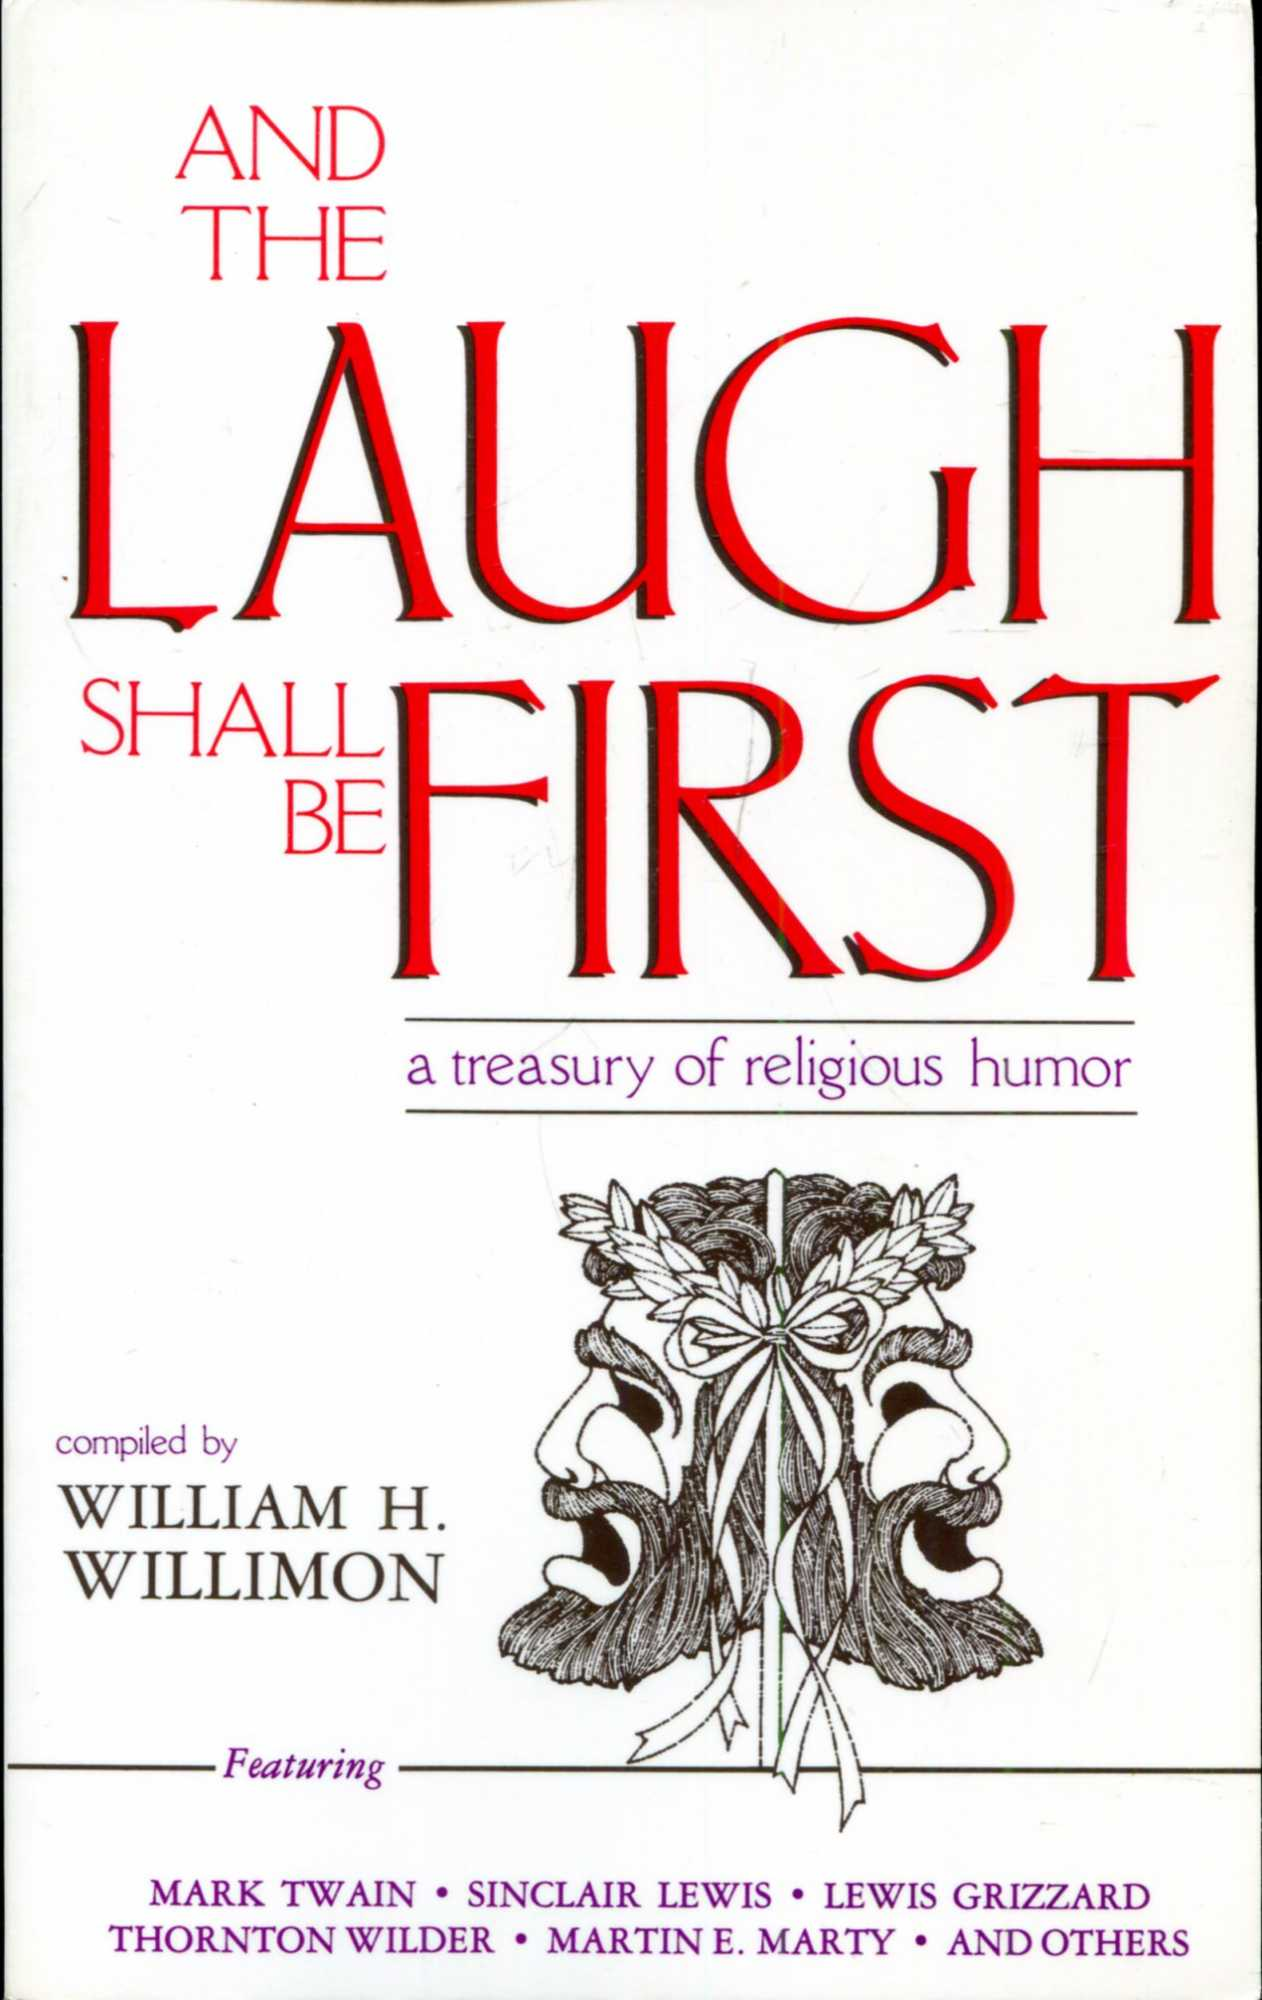 Image for And The Laugh Shall Be First, a treasury of religious humor